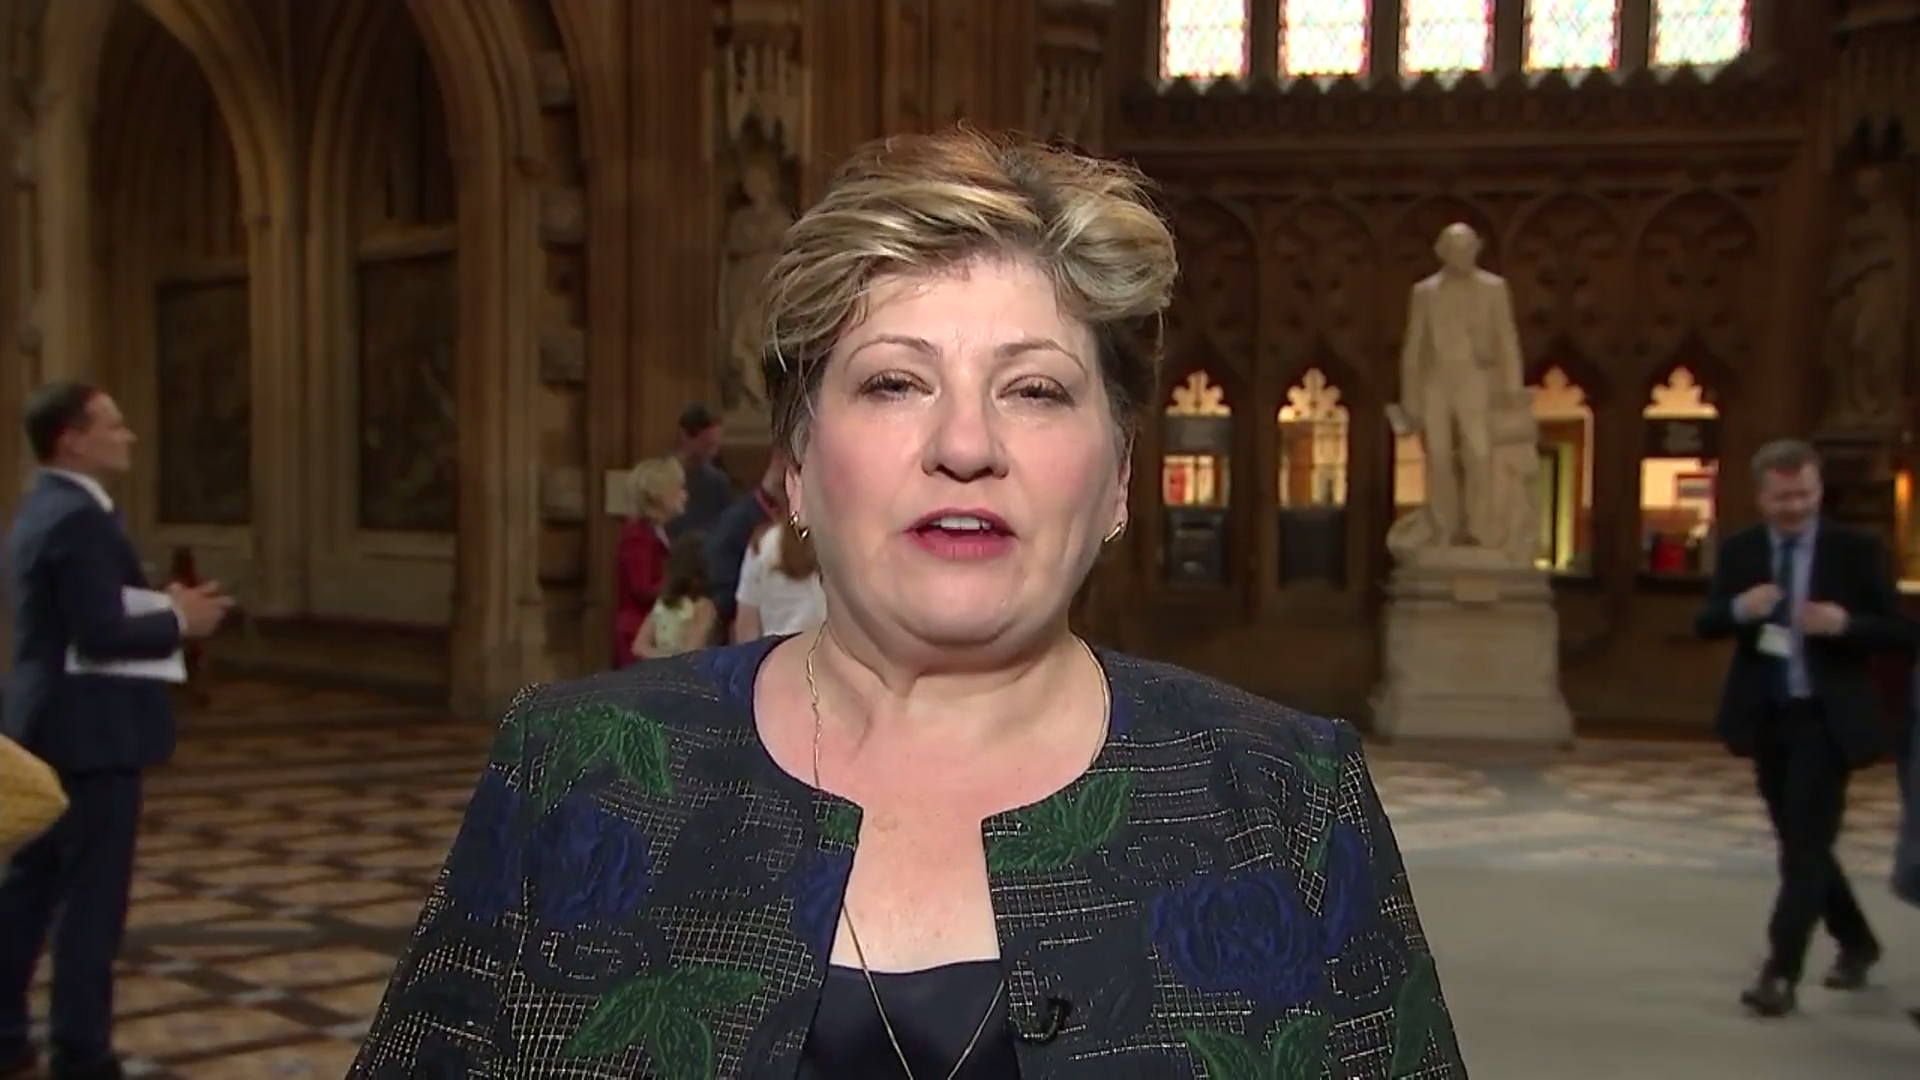 Labour's Emily Thornberry: 'Why on earth should we be bowing down in front of this dreadful President?'